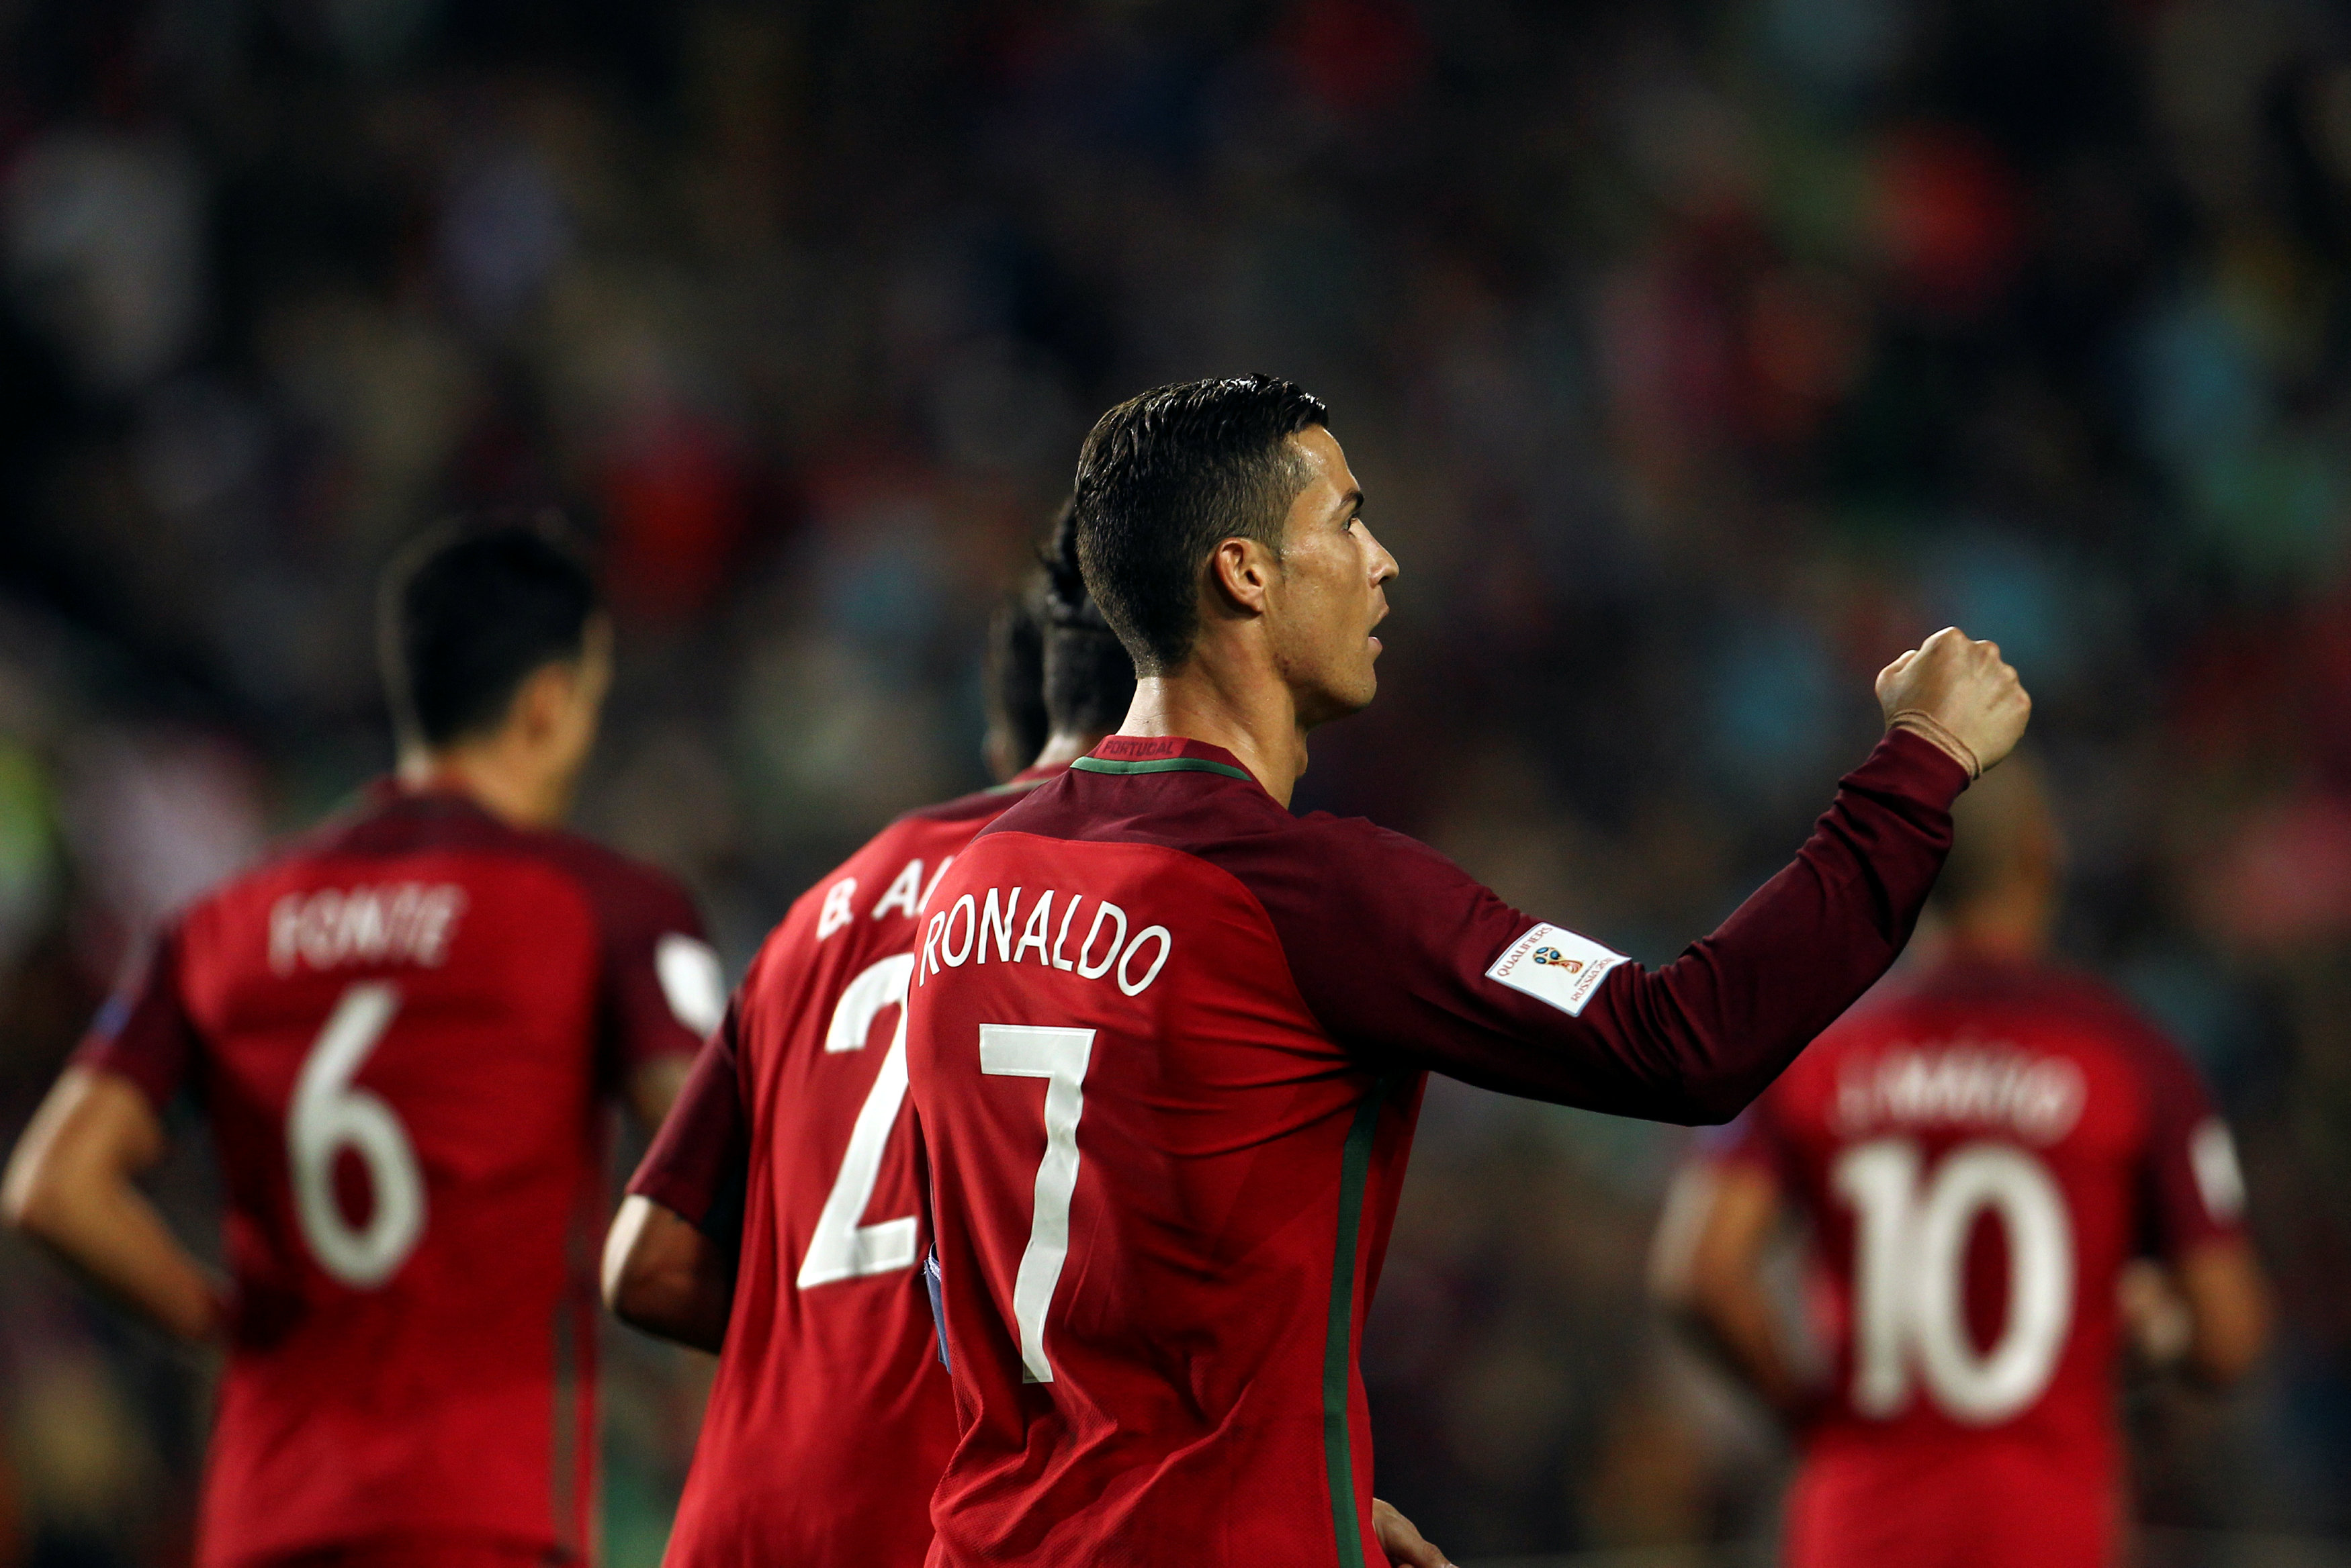 Ronaldo d livre le portugal la belgique cartonne l - Coupe du portugal football ...